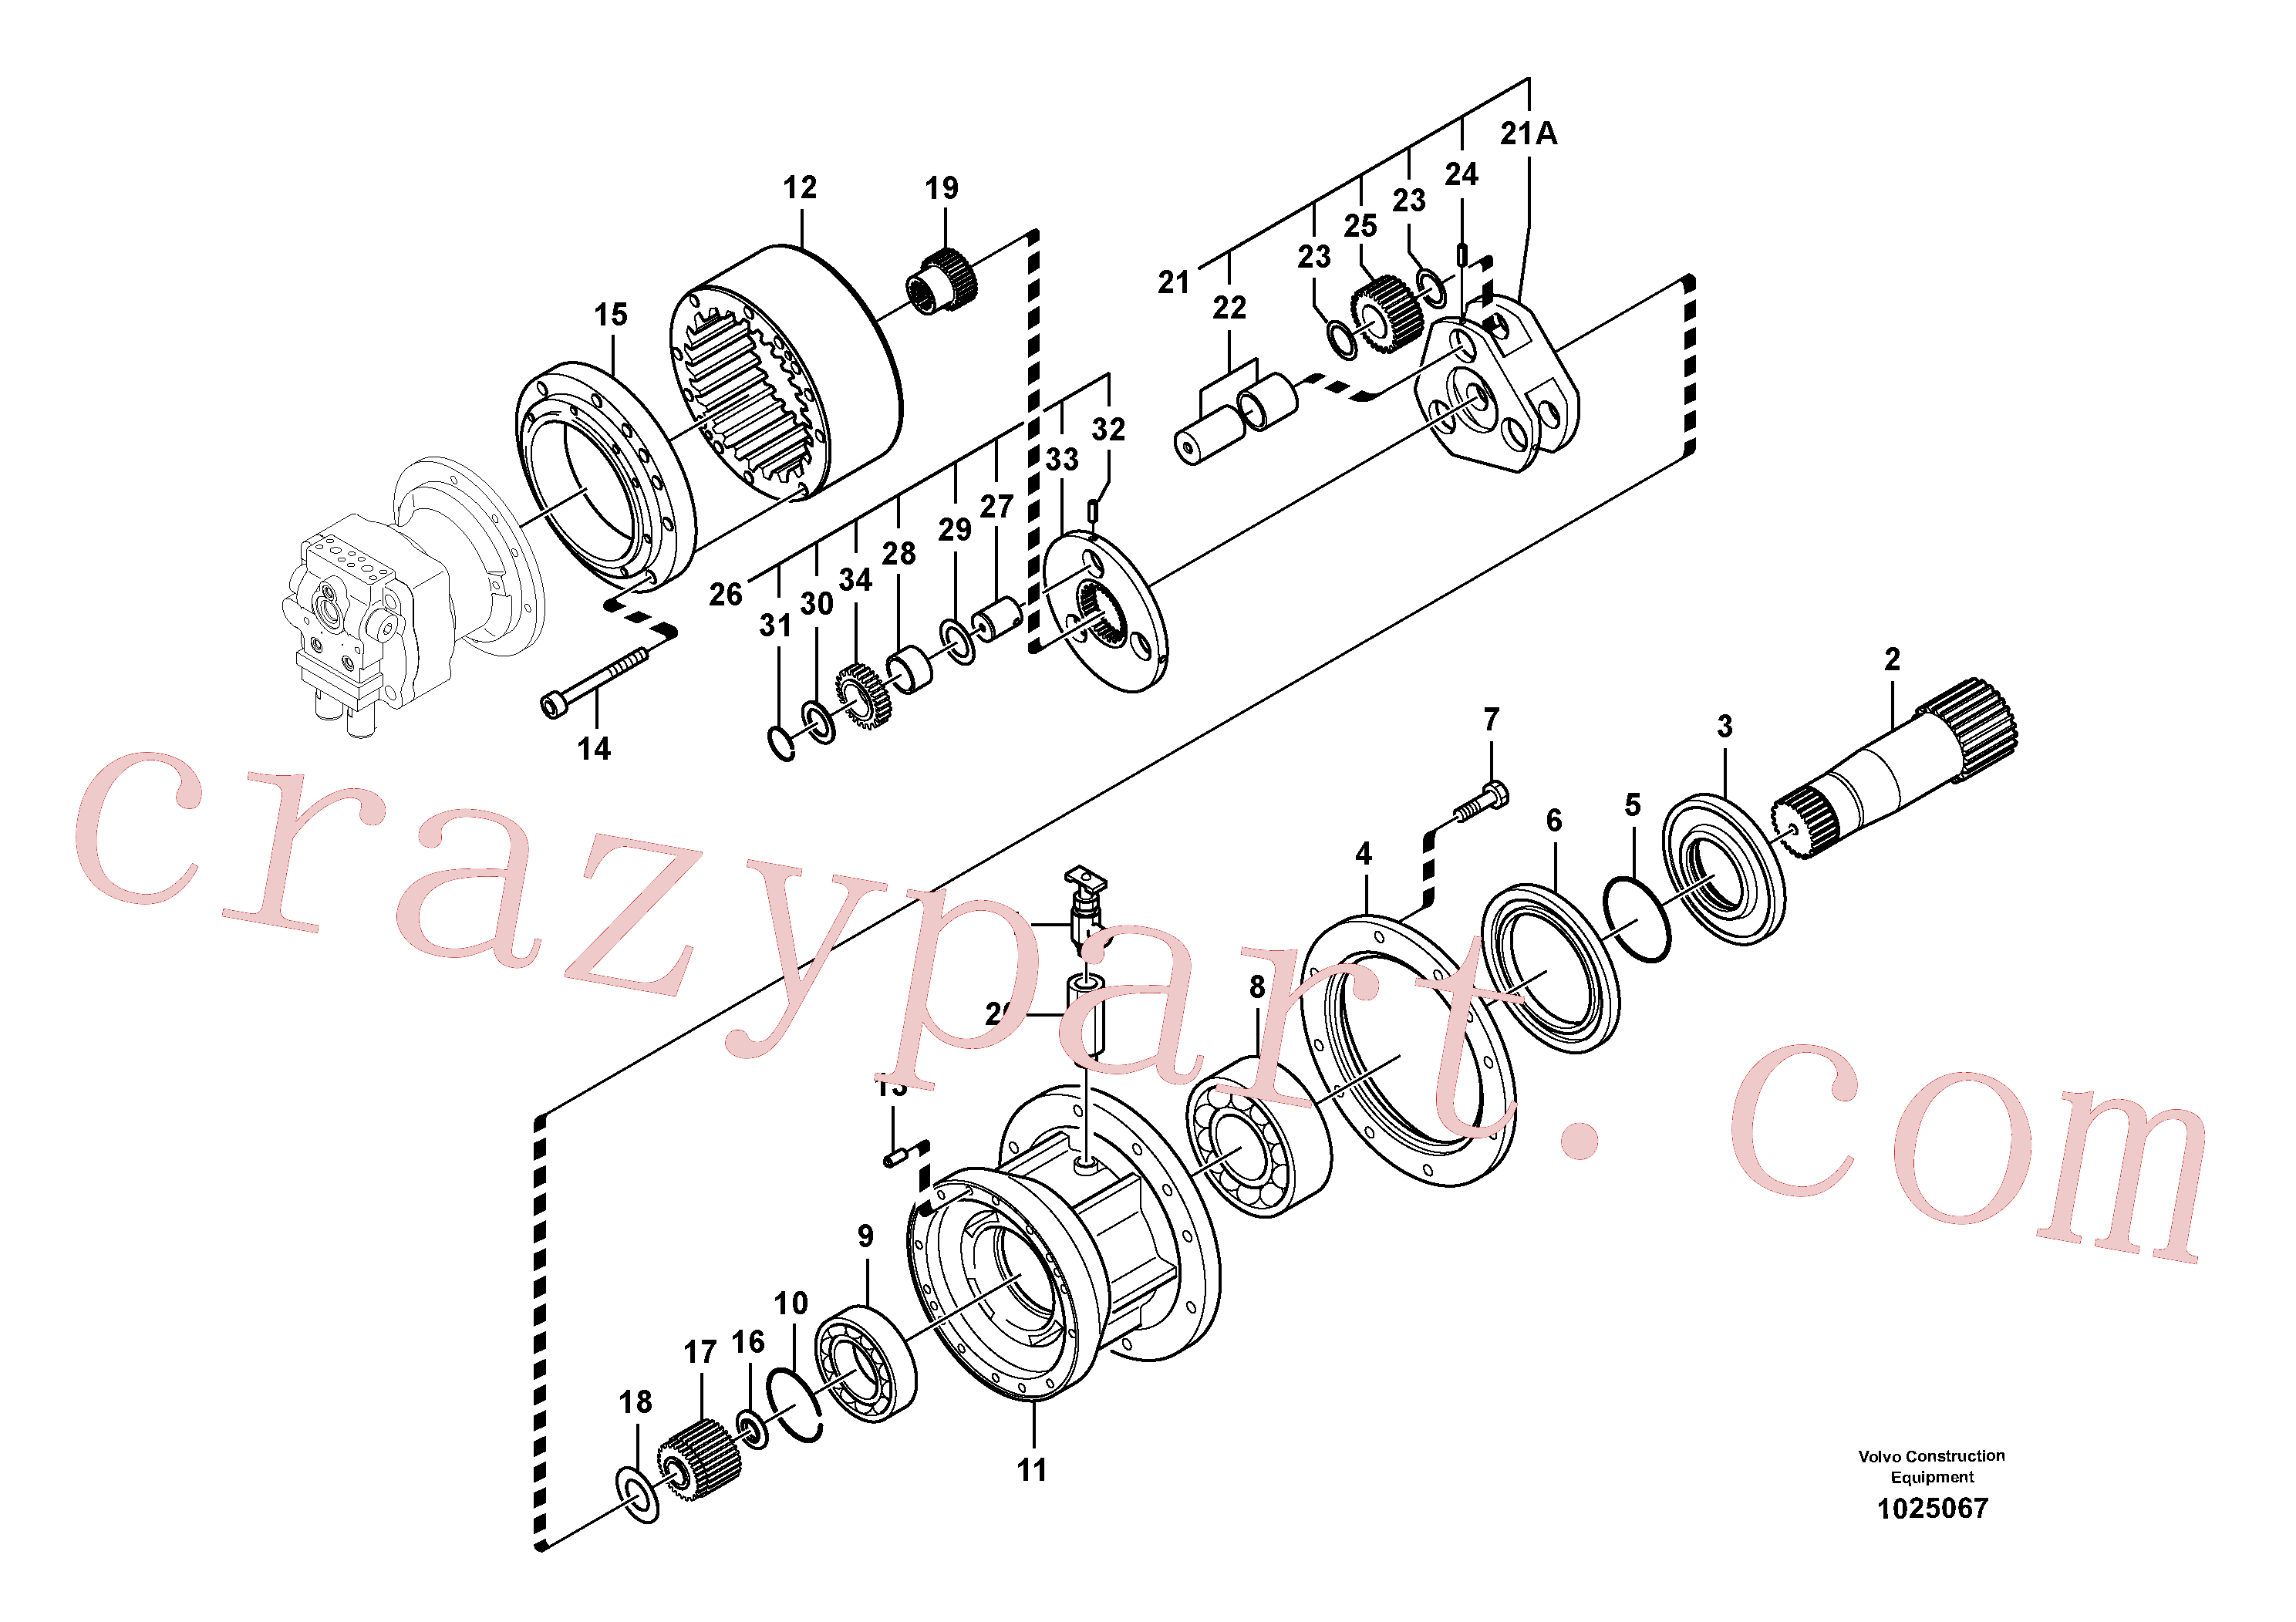 SA7118-30370 for Volvo Swing gearbox(1025067 assembly)